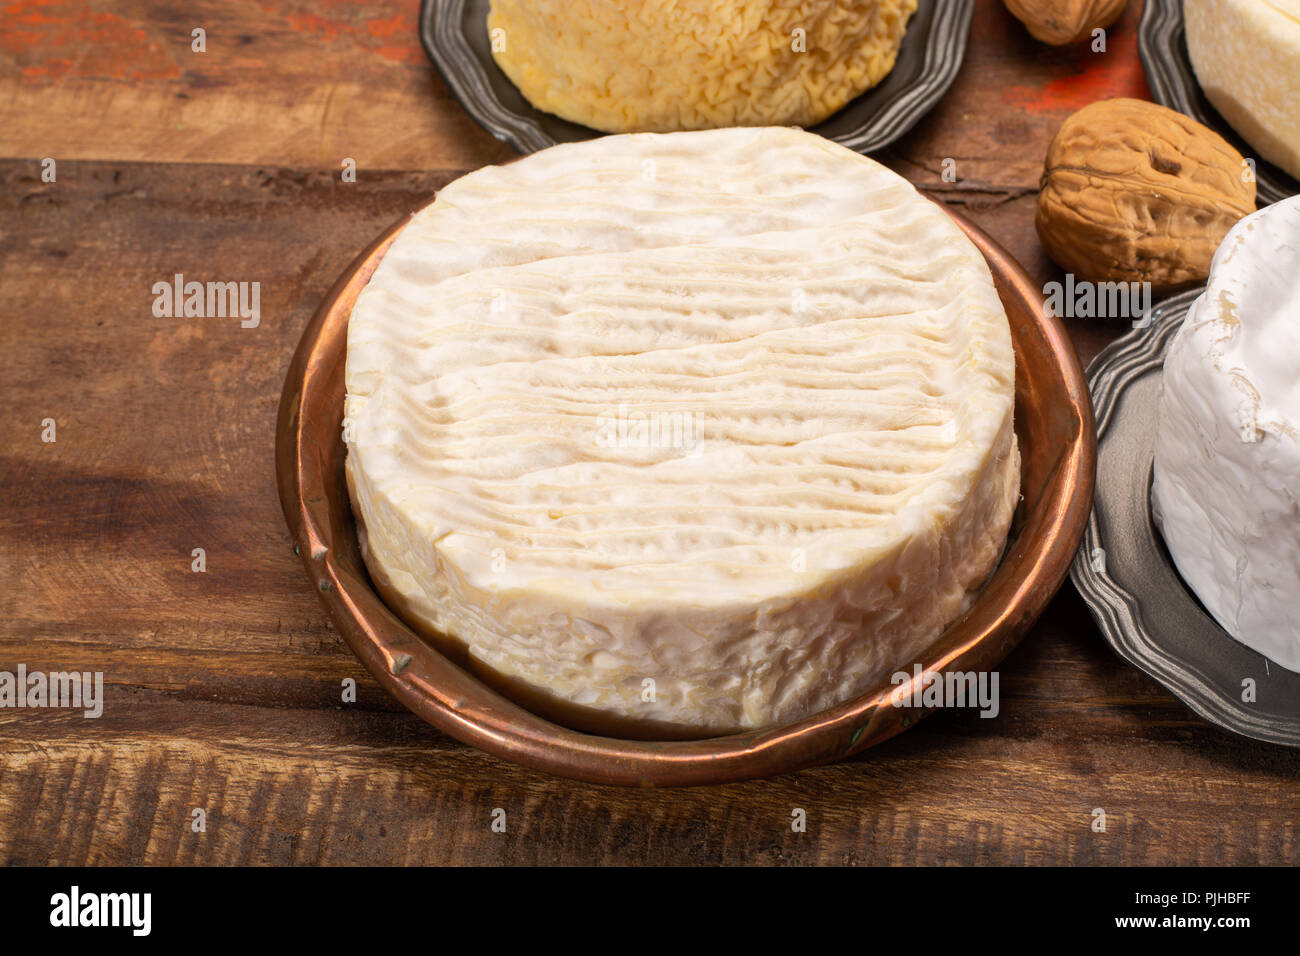 Camembert Moist Soft Creamy Surface Ripened Cow S Milk Cheese Made In Normandy Northern France Stock Photo Alamy